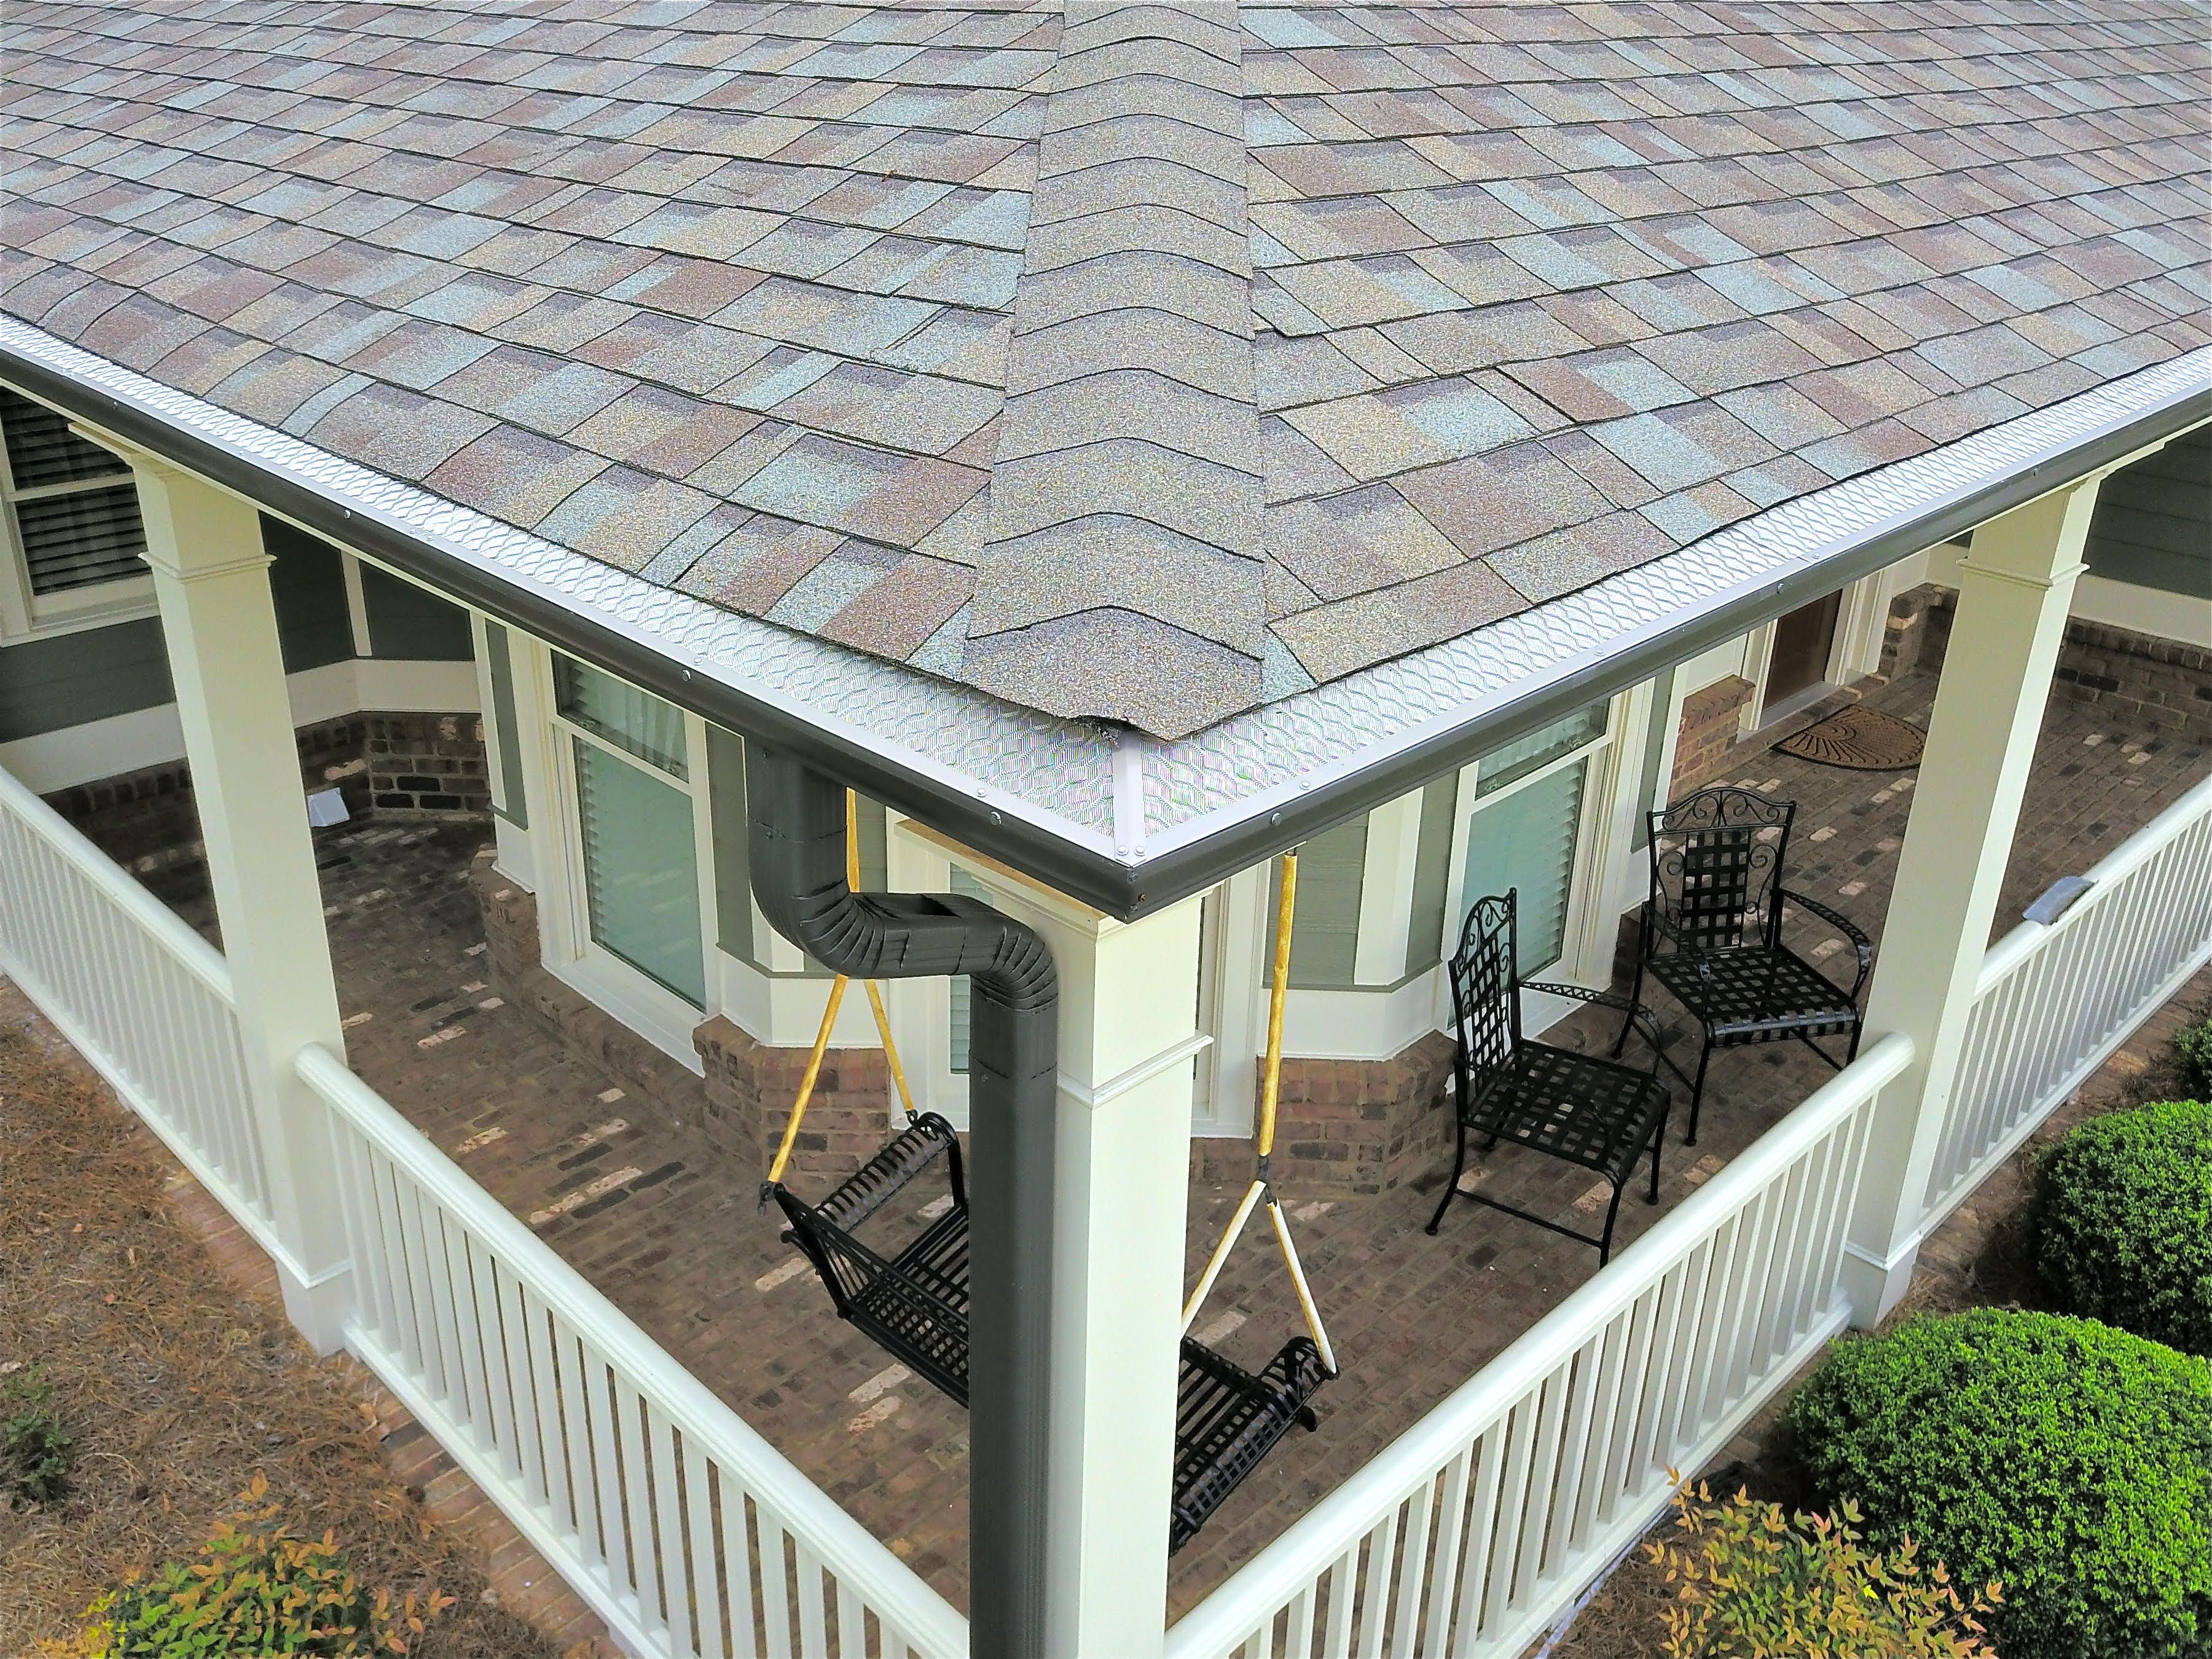 Set Up A Free Estimate Through Our Website Homecraftgutterguard Com Or Give Us A Call At 678 995 7092 Gutter Guard Gutter Protection Cleaning Gutters